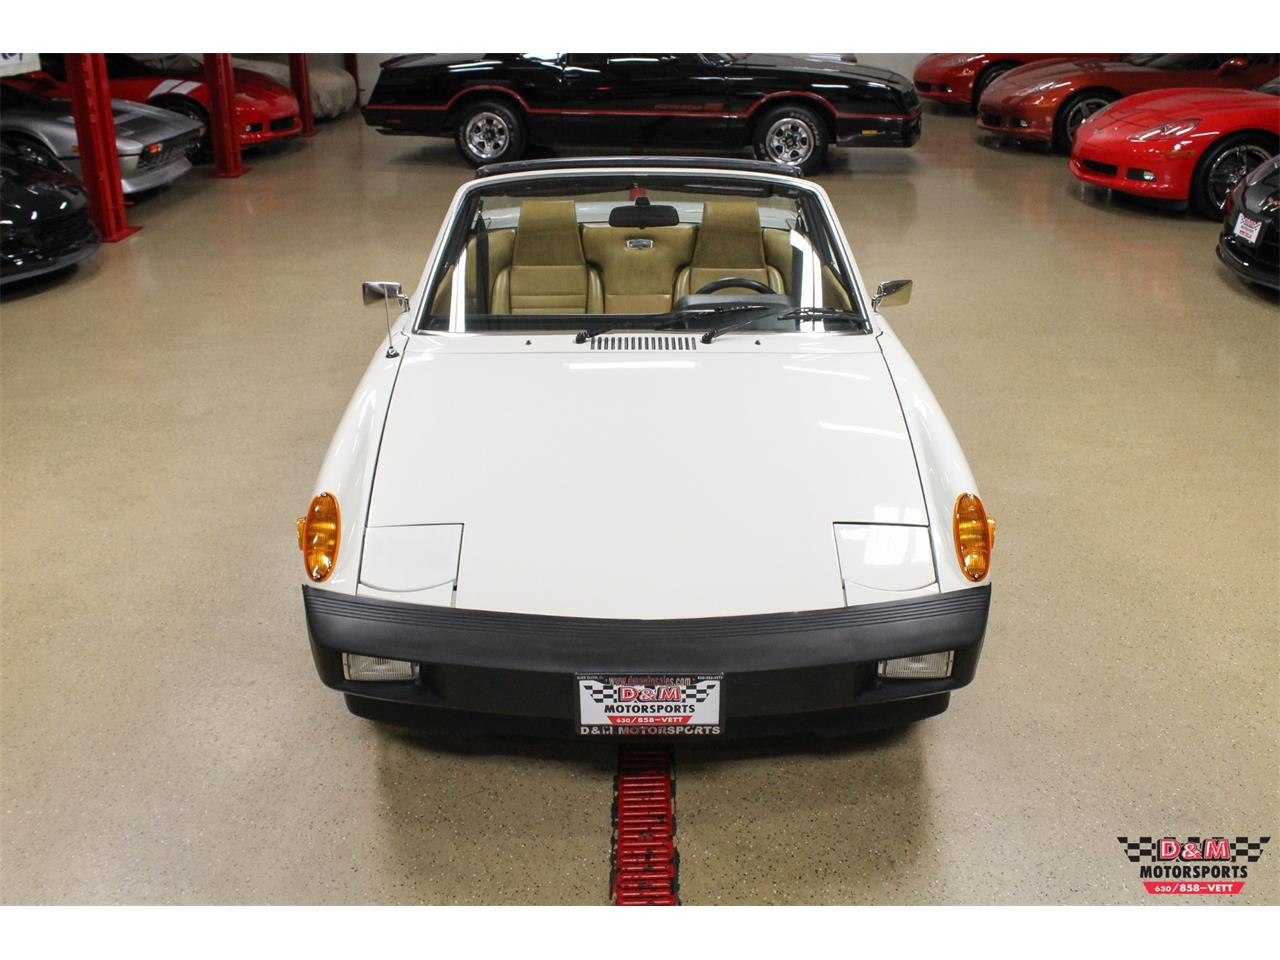 Large Picture of '76 Porsche 914 located in Glen Ellyn Illinois Offered by D & M Motorsports - P8QY